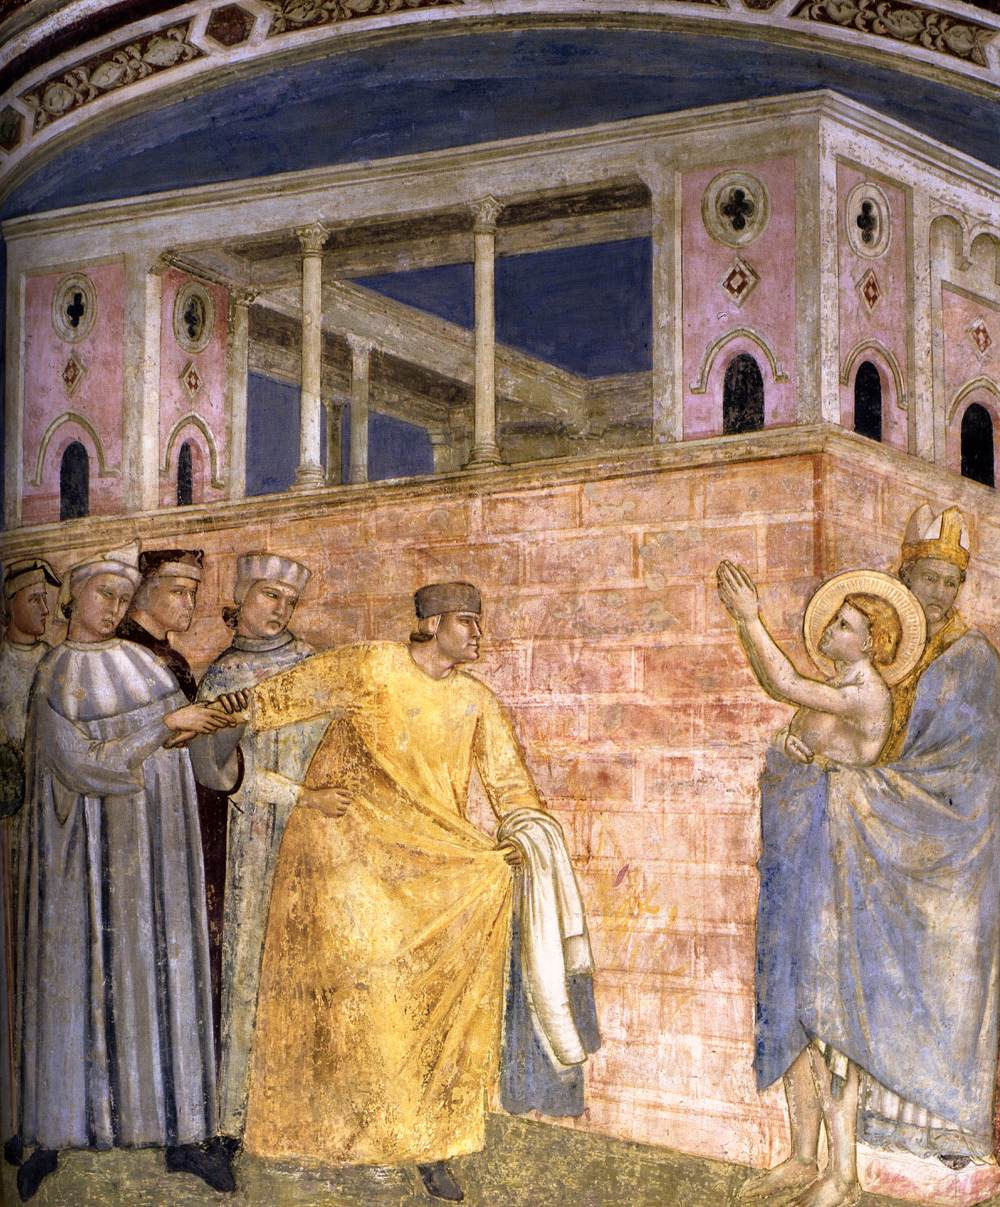 the life of st francis 'francis, go and build up my house, which thou seest, is falling into ruin' to fulfill this command of our lord, st francis of assisi (1181-1226) began by restoring physical churches and.